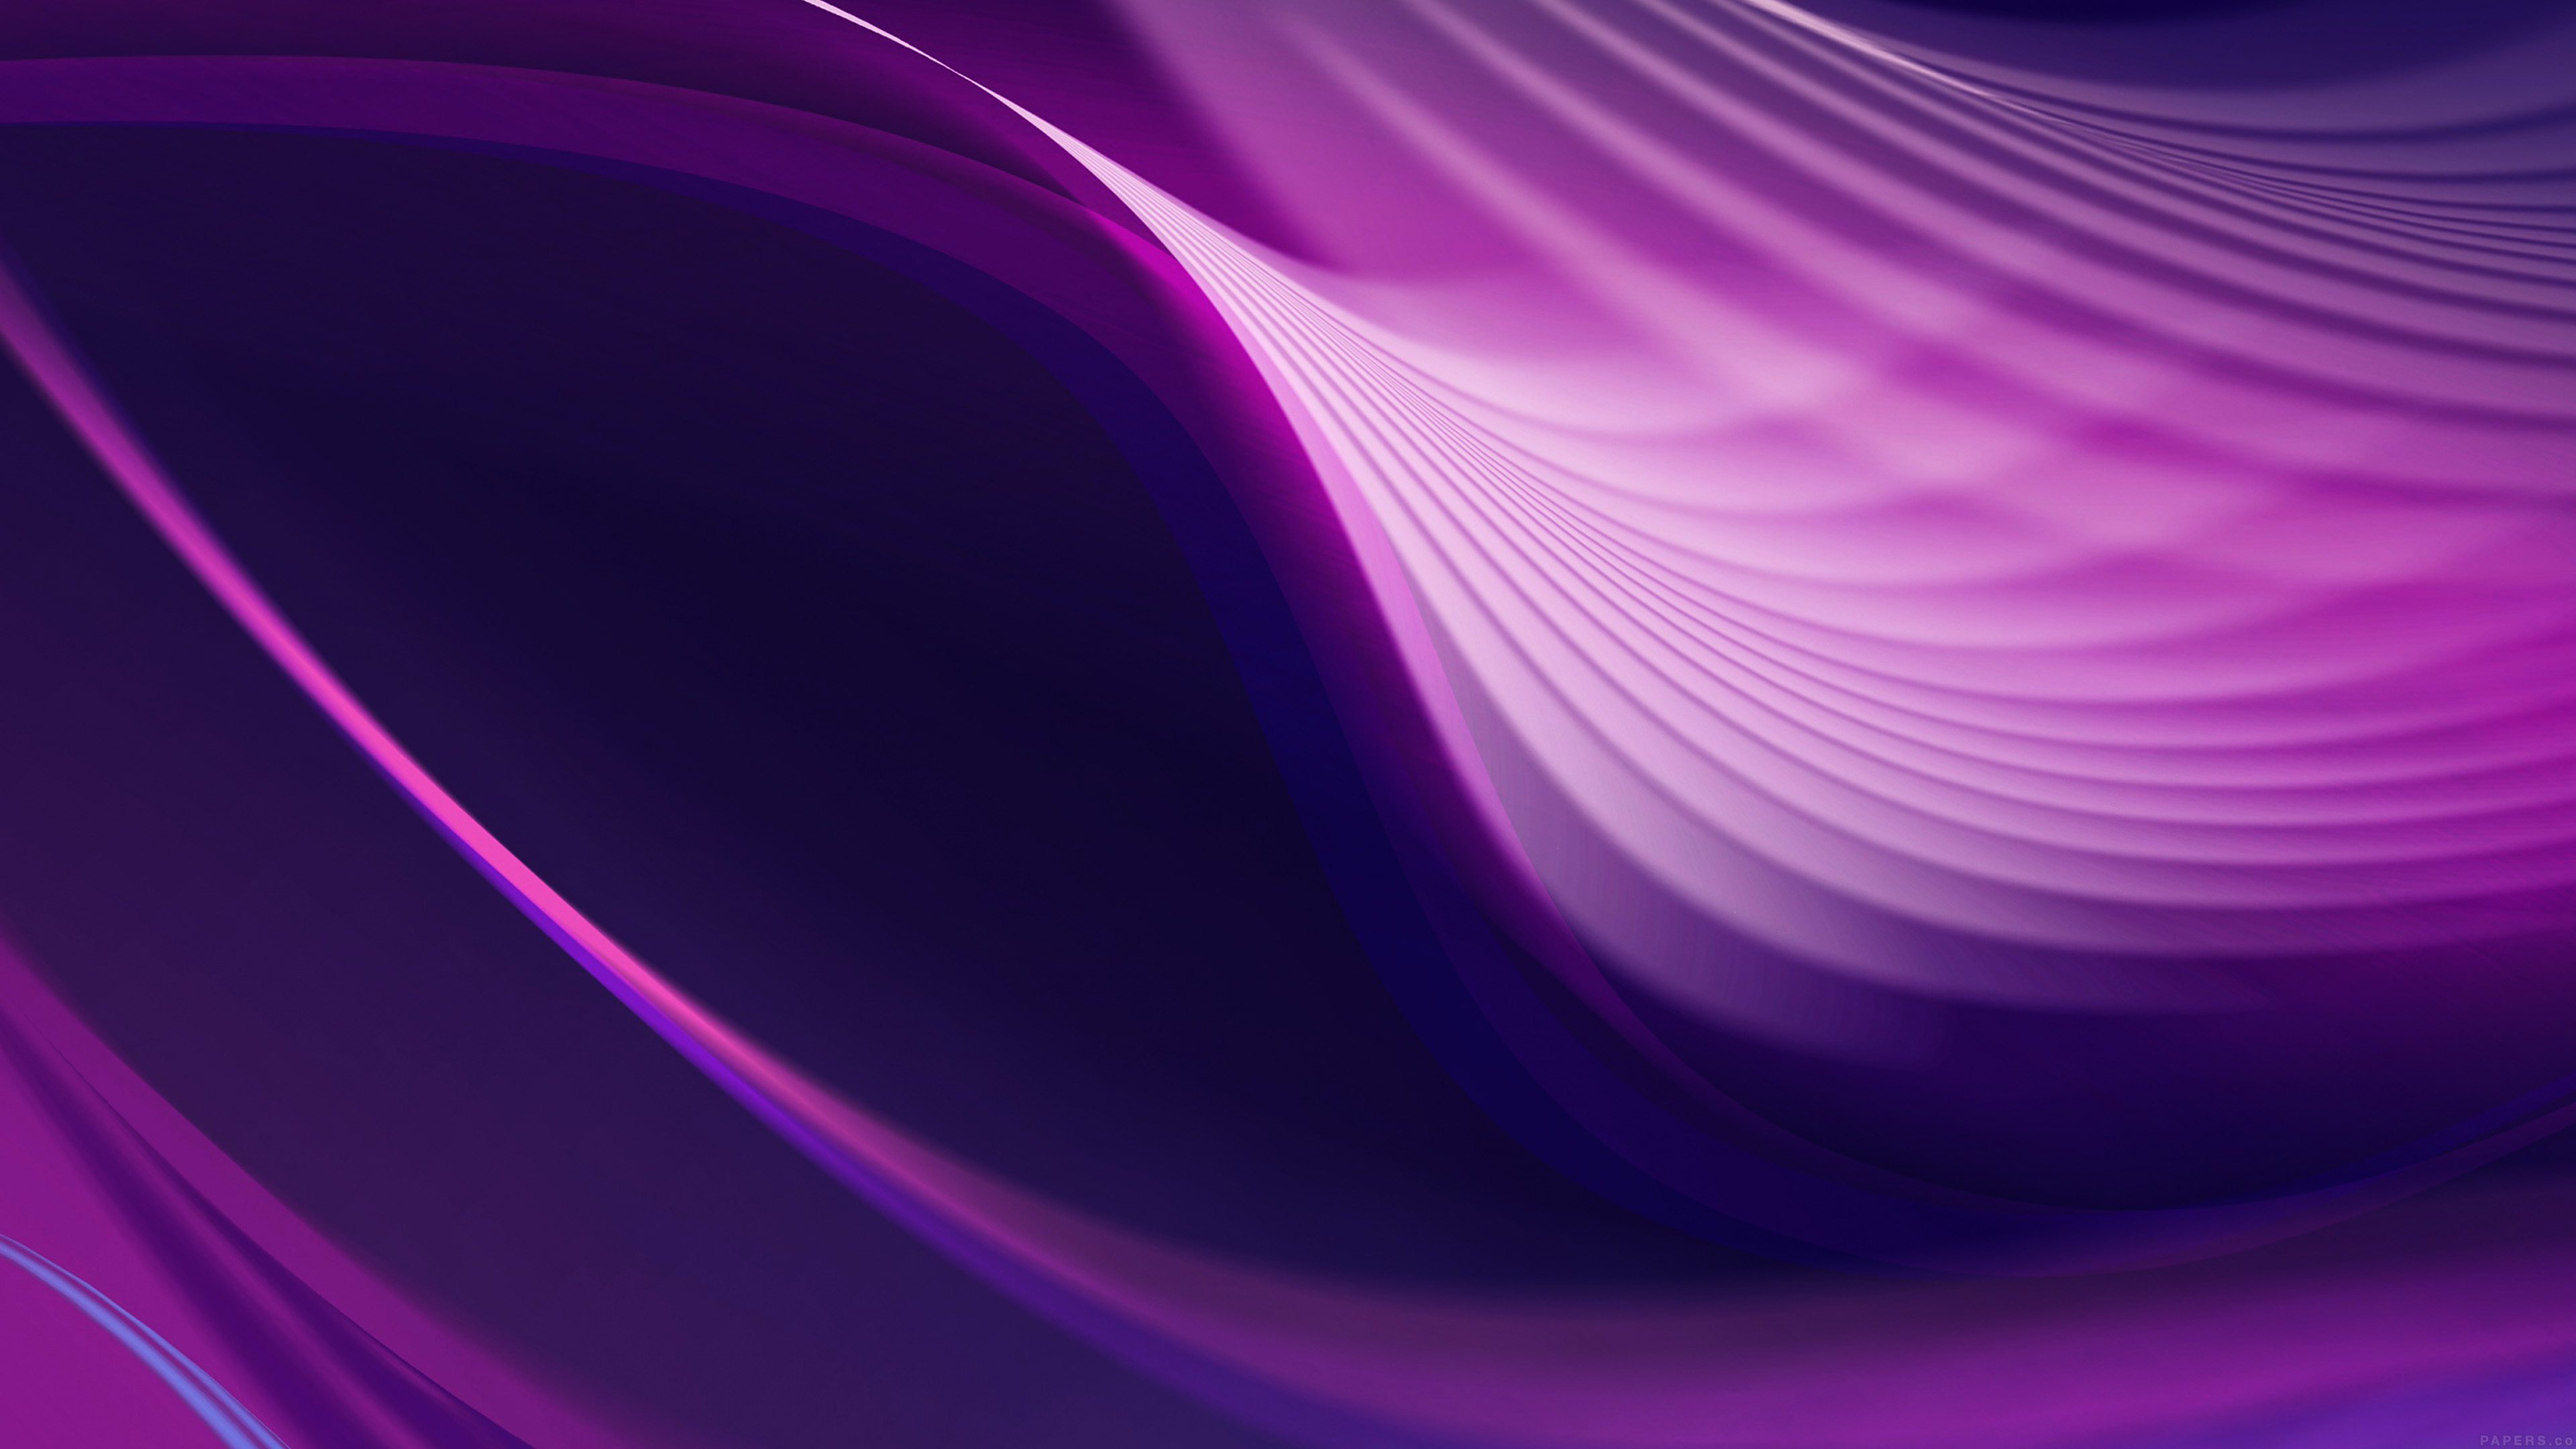 Digital 3d Art Wallpaper Vi24 Wave Abstract Purple Pattern Papers Co